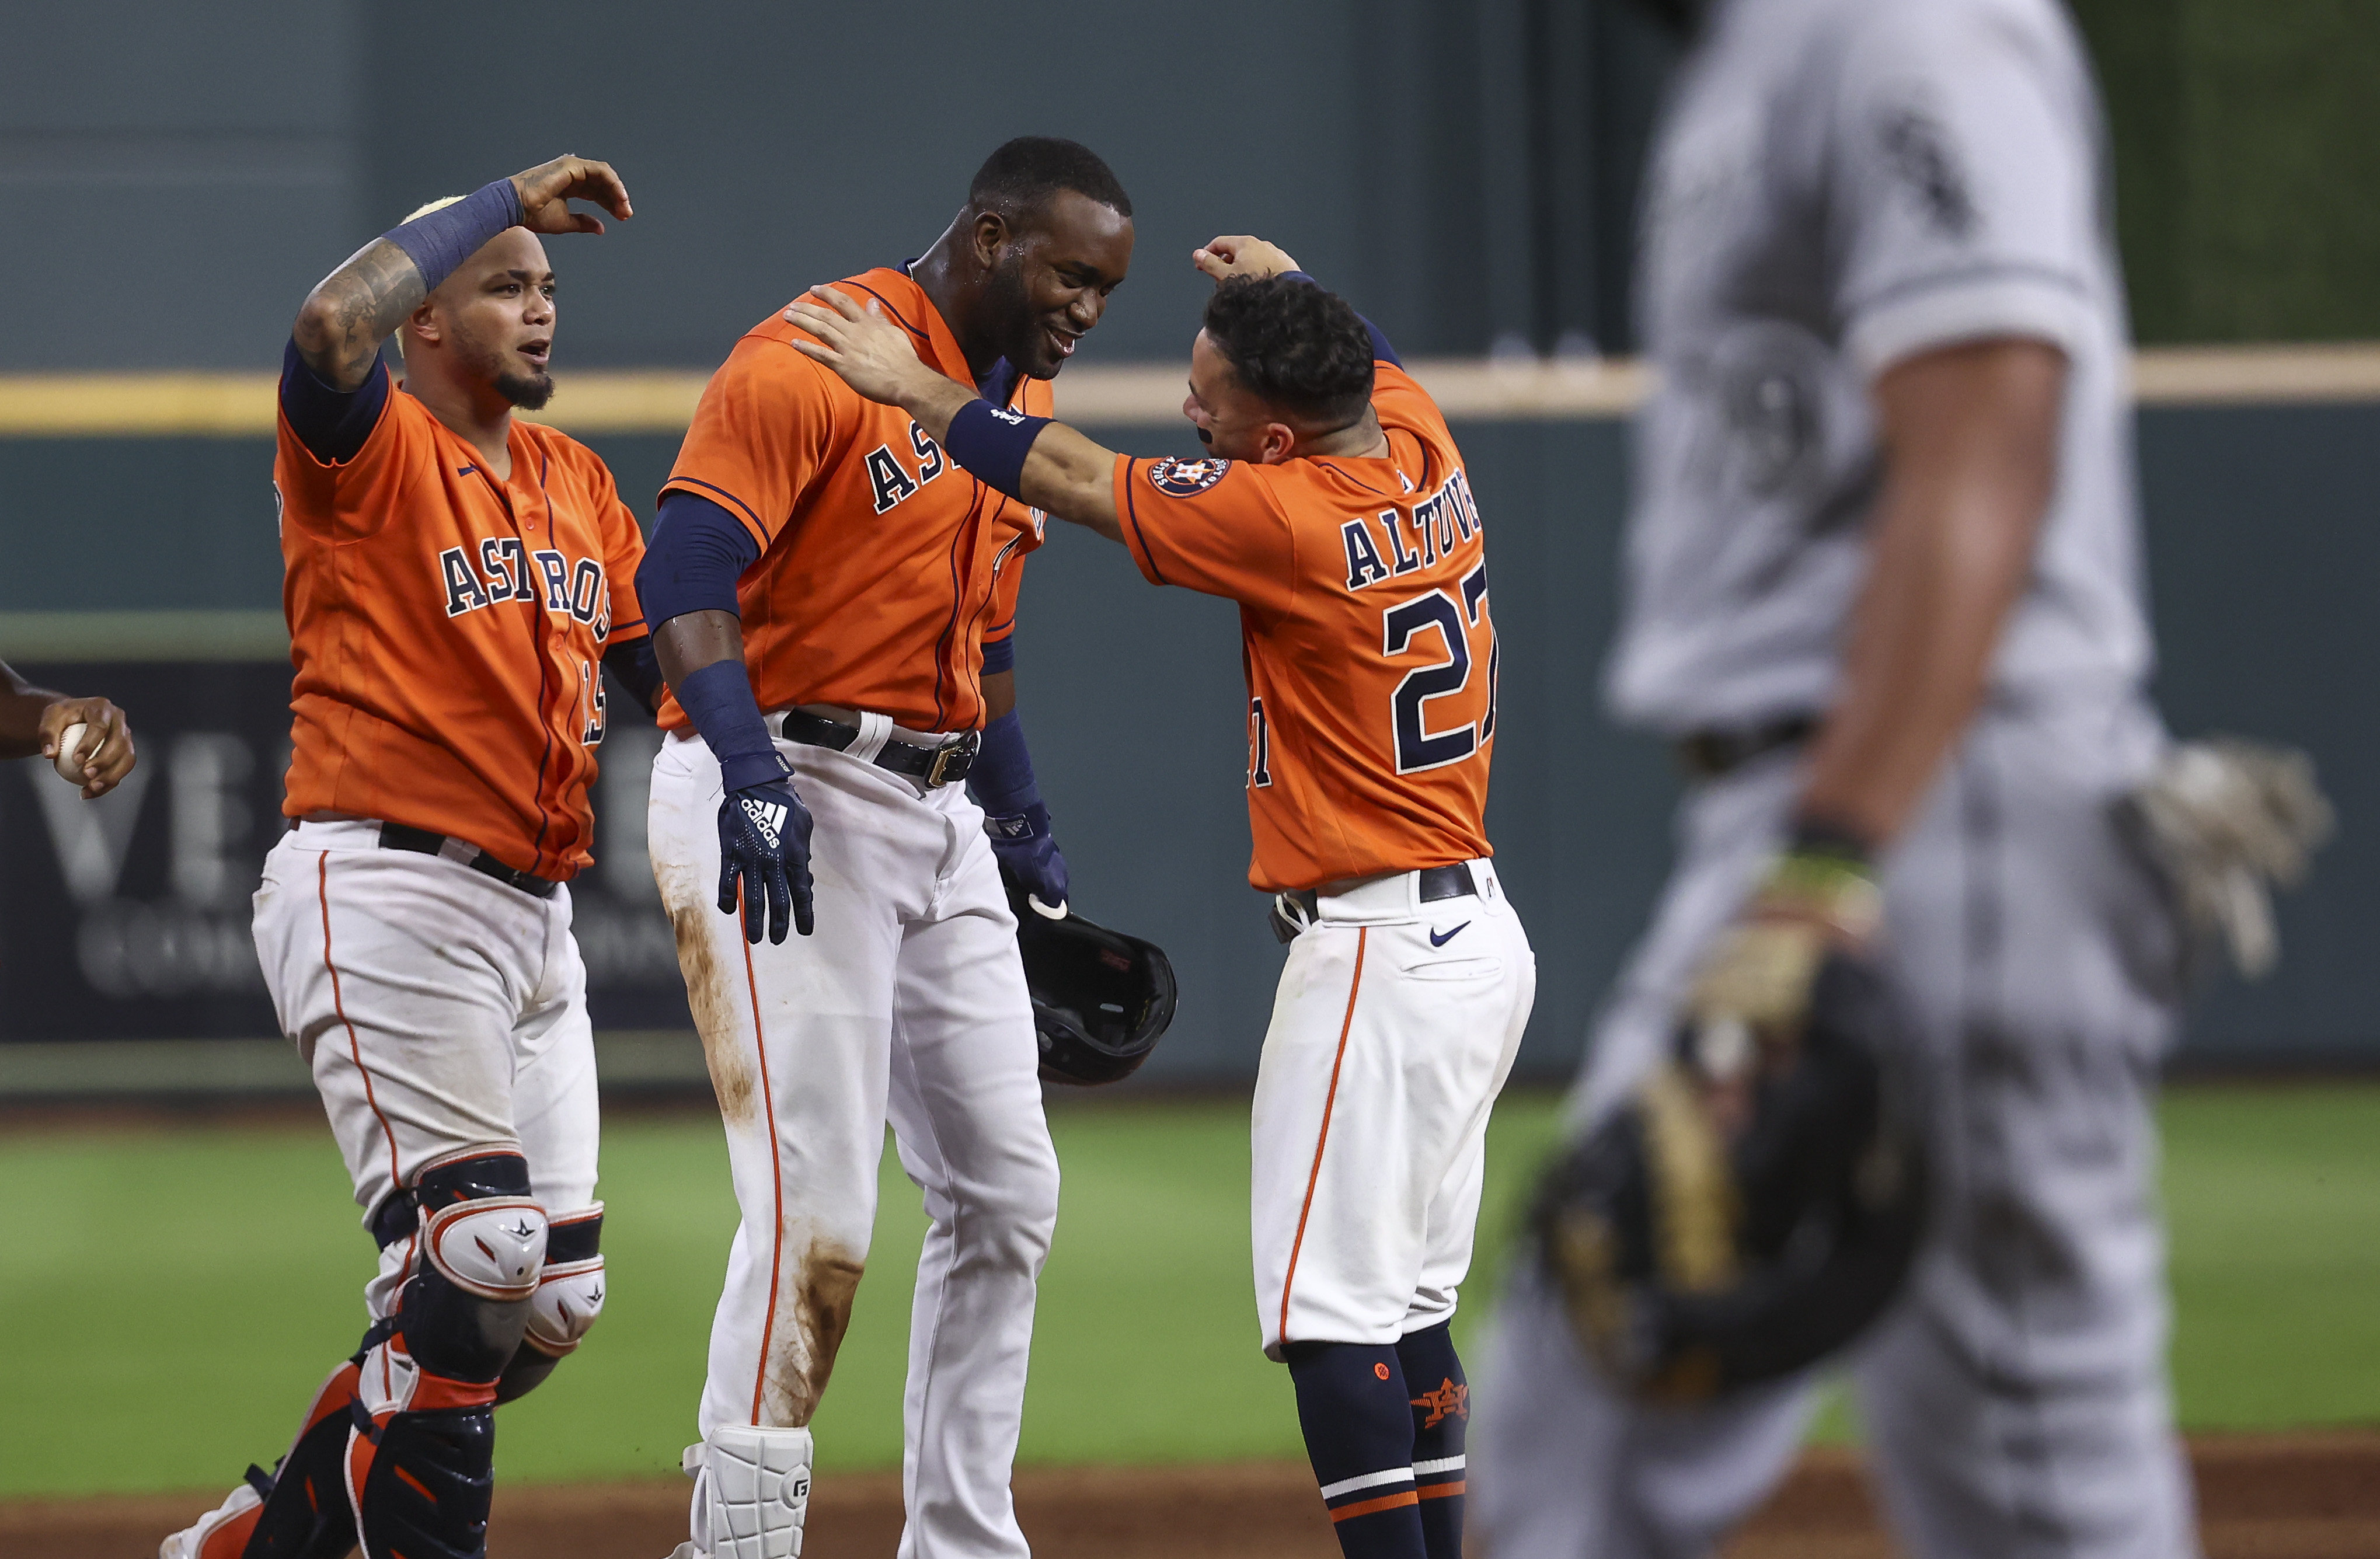 Jun 18, 2021; Houston, Texas, USA; Houston Astros designated hitter Yordan Alvarez (44) celebrates with teammates after driving in a run during the ninth inning against the Chicago White Sox at Minute Maid Park. Mandatory Credit: Troy Taormina-USA TODAY Sports